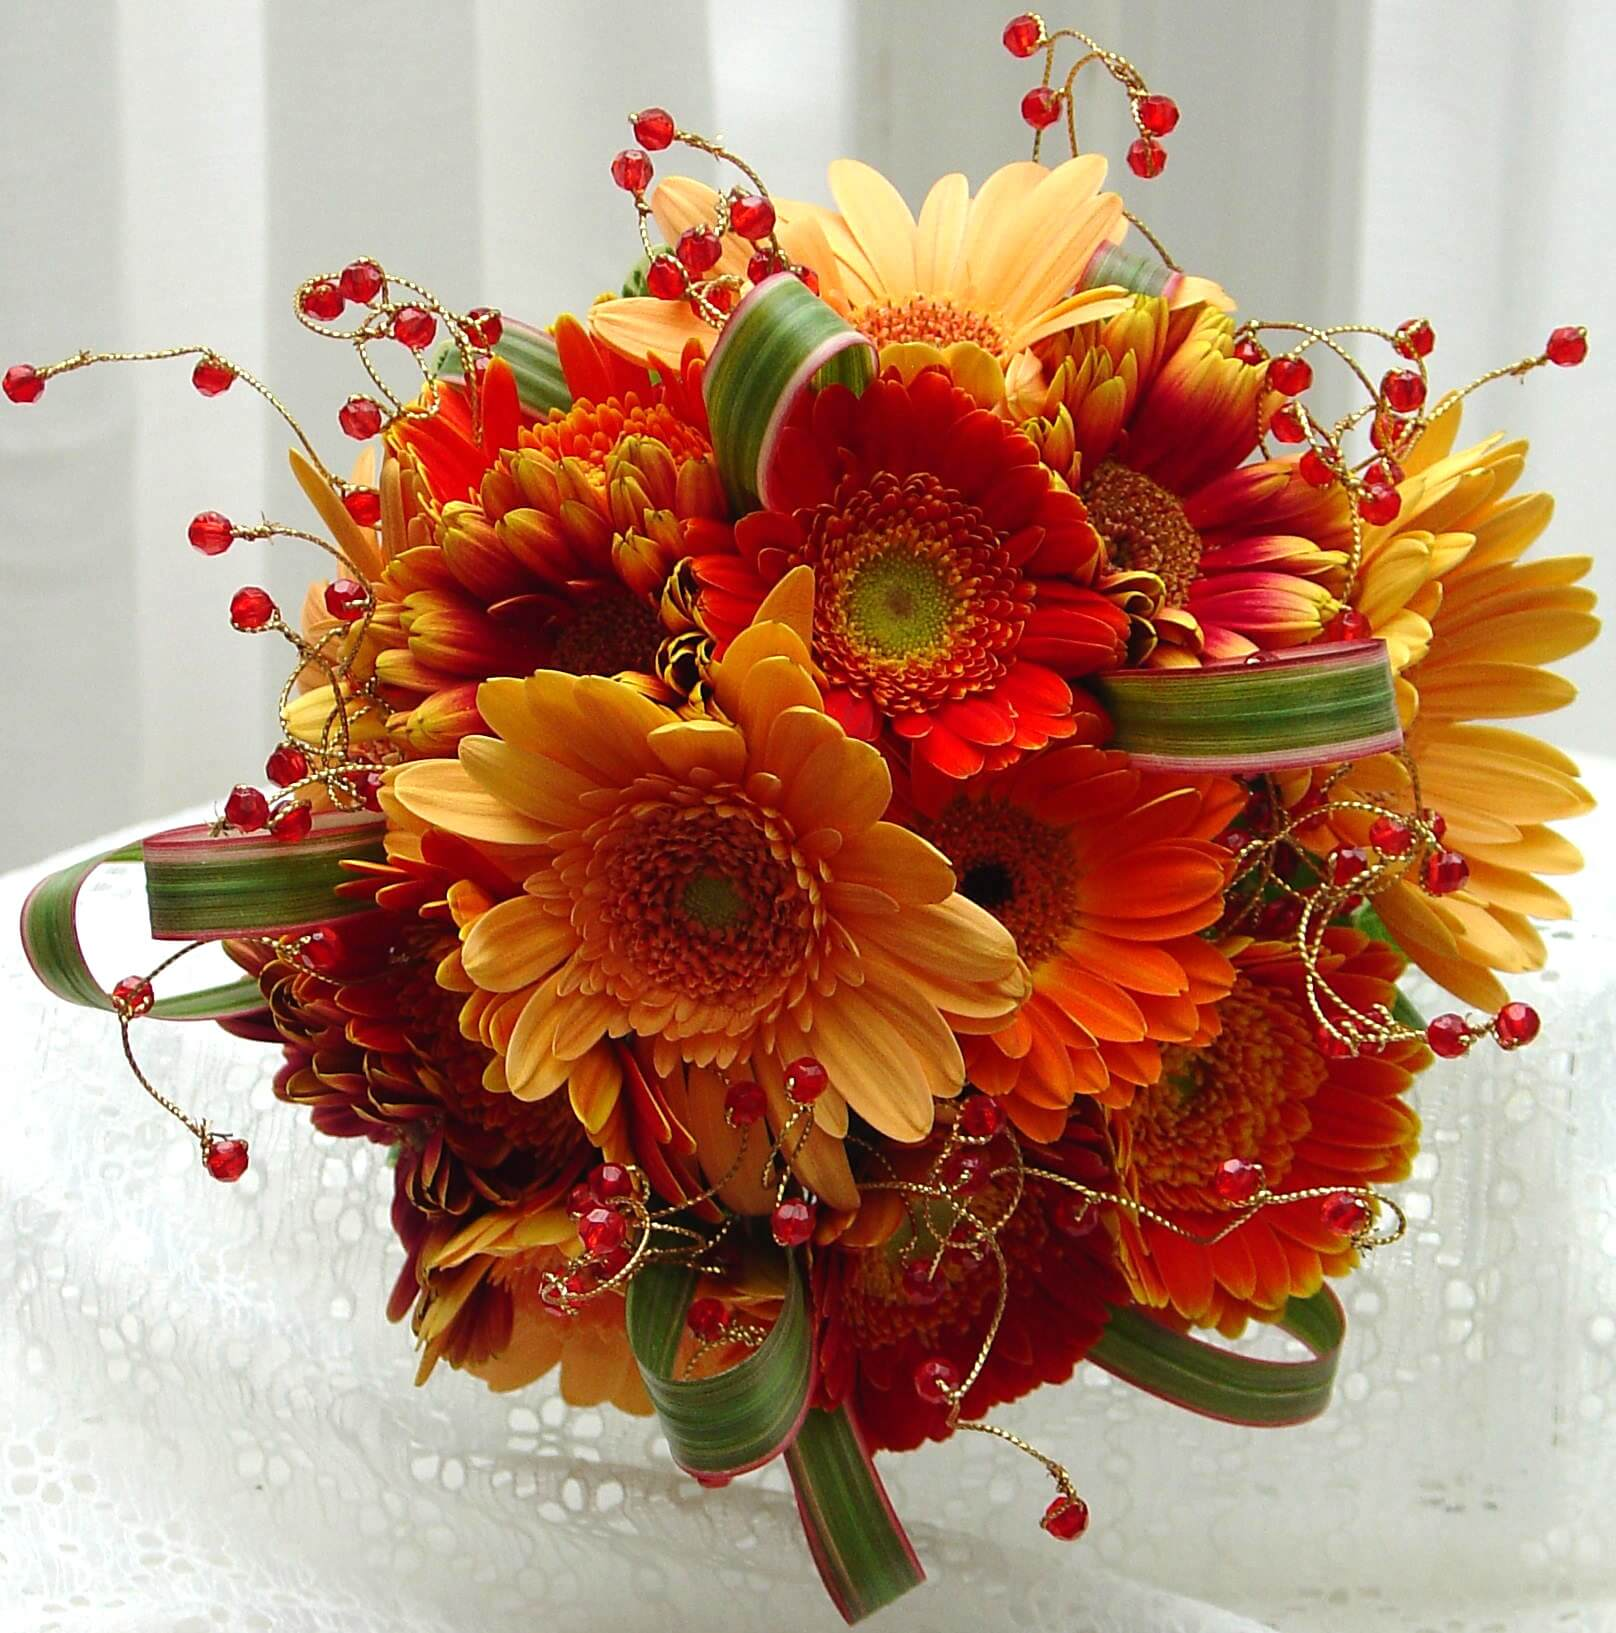 Fall Gerbera Daisy Bouquet Fall Gerbera Da...